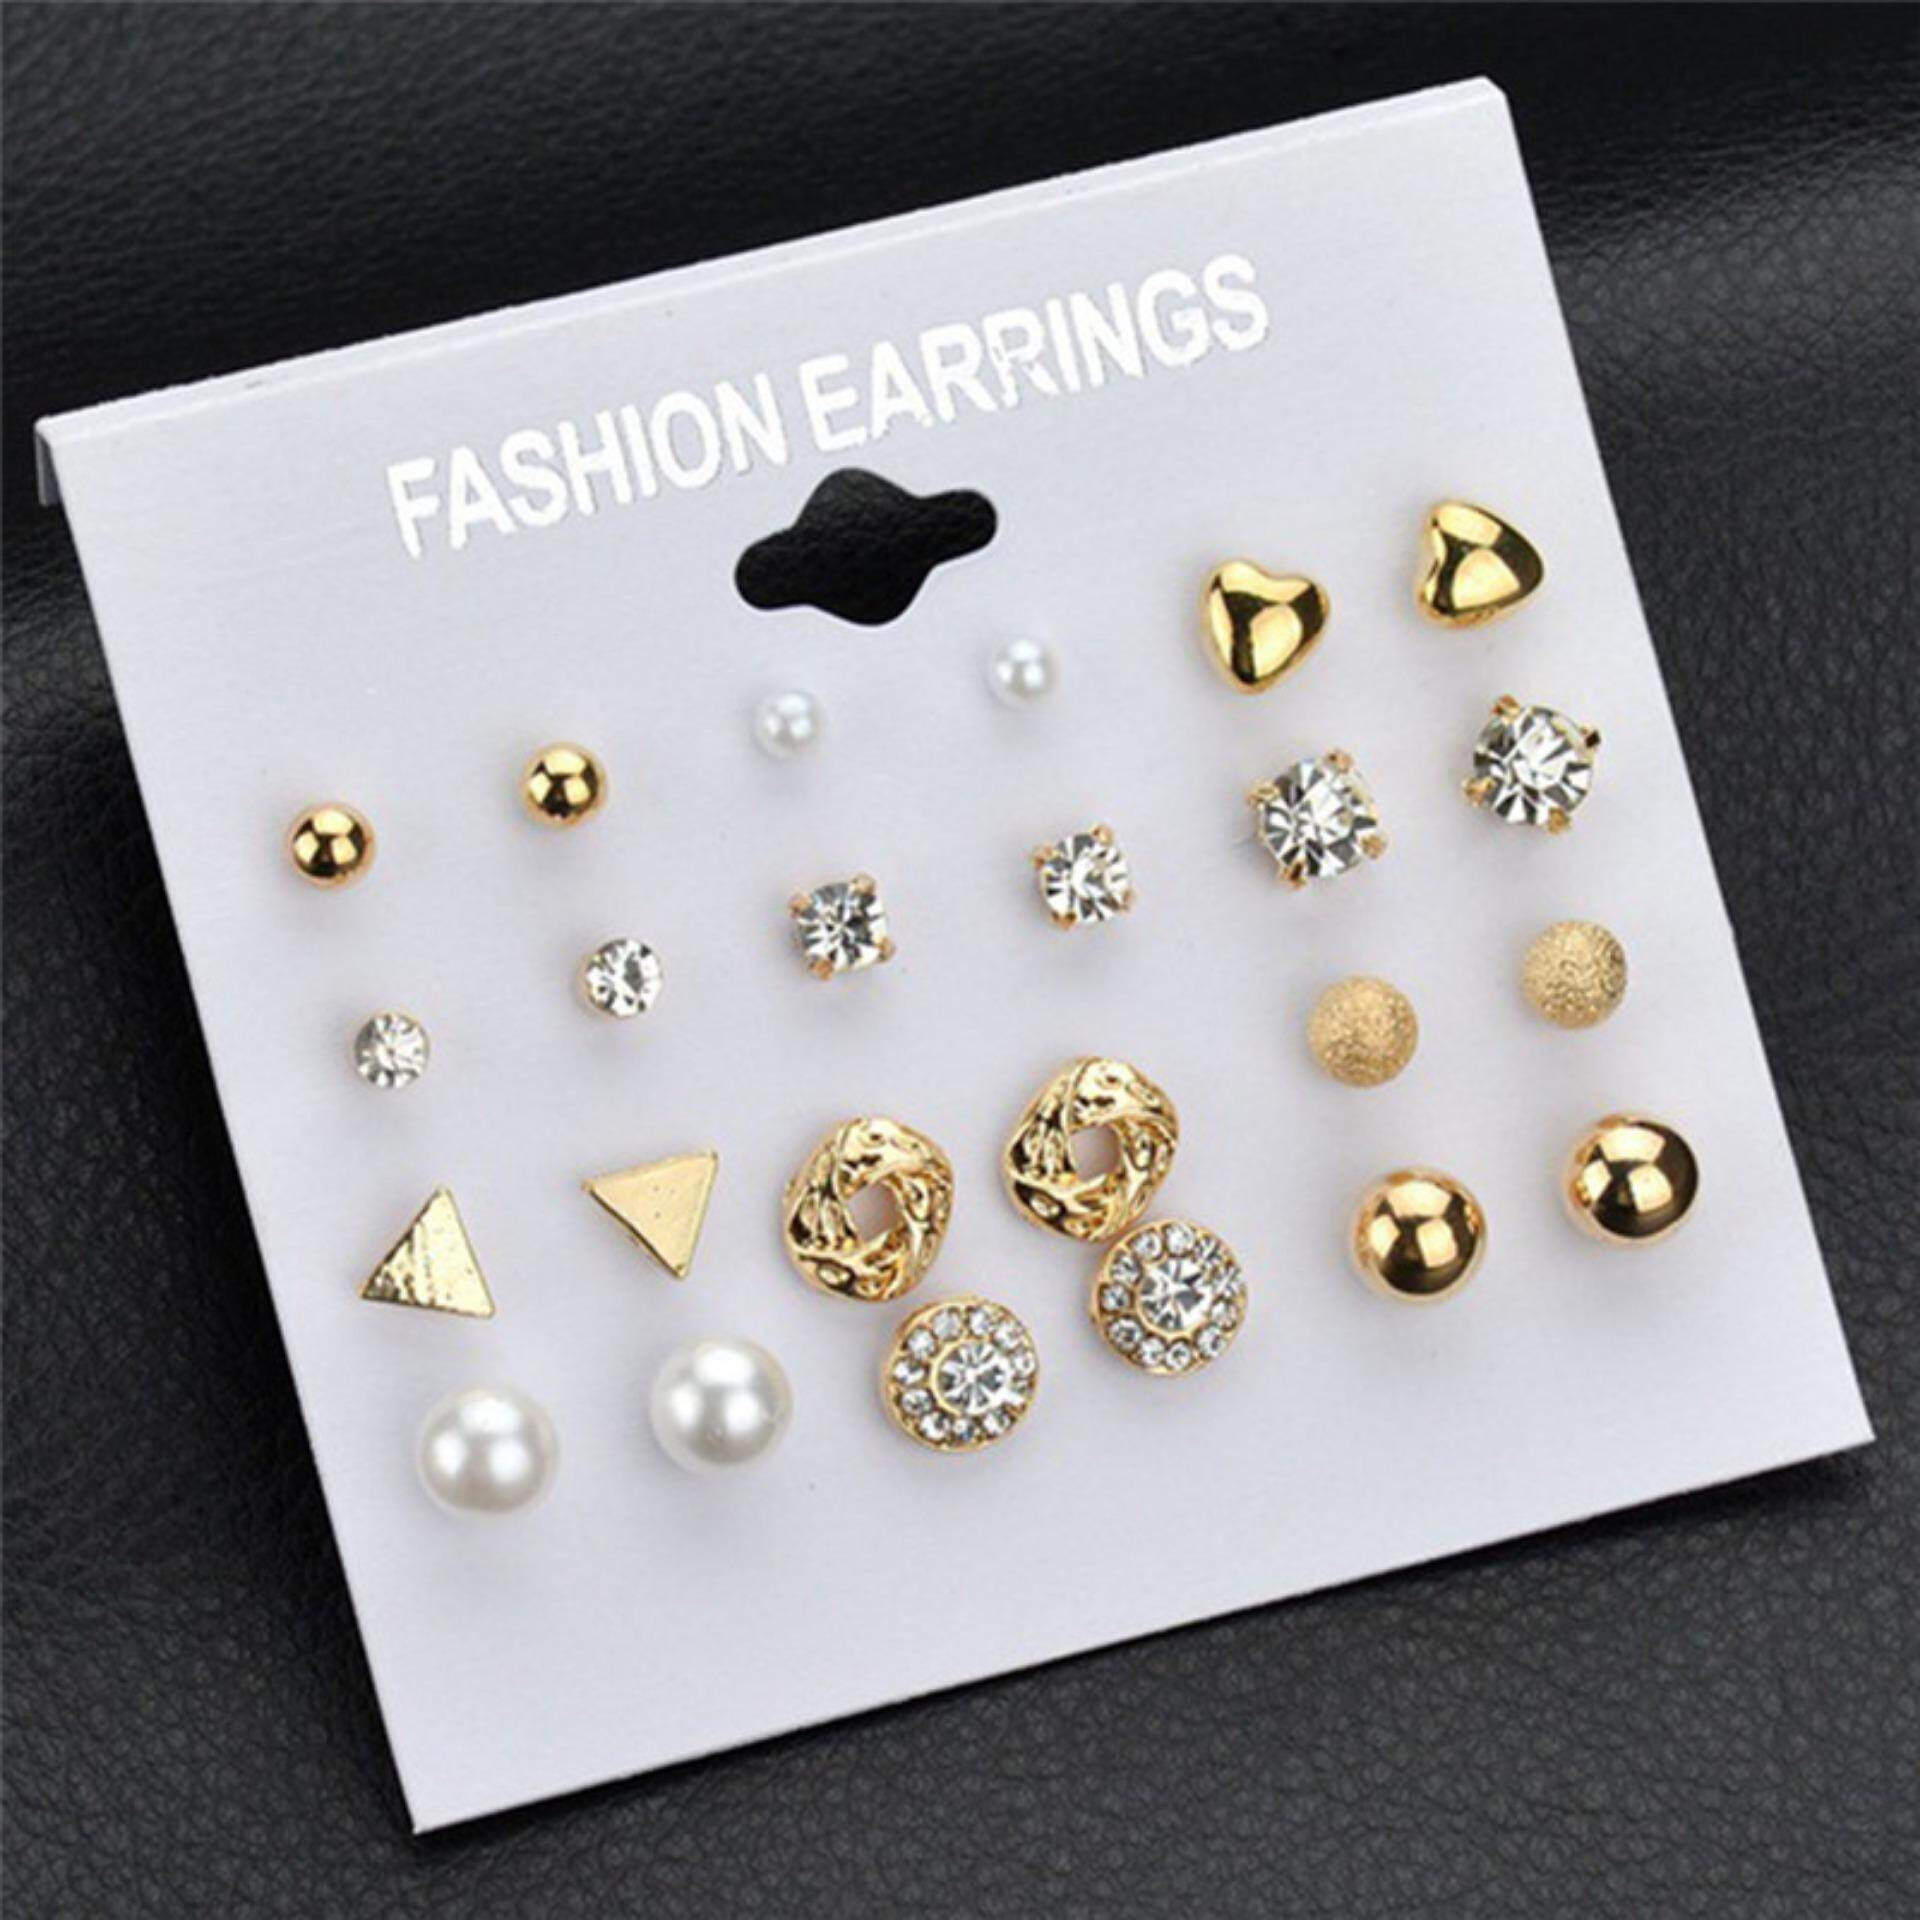 12pcs/Set Women Earrings Fashion Square Zircon Earring Love Heart Rhinestones Ear Studs Gold